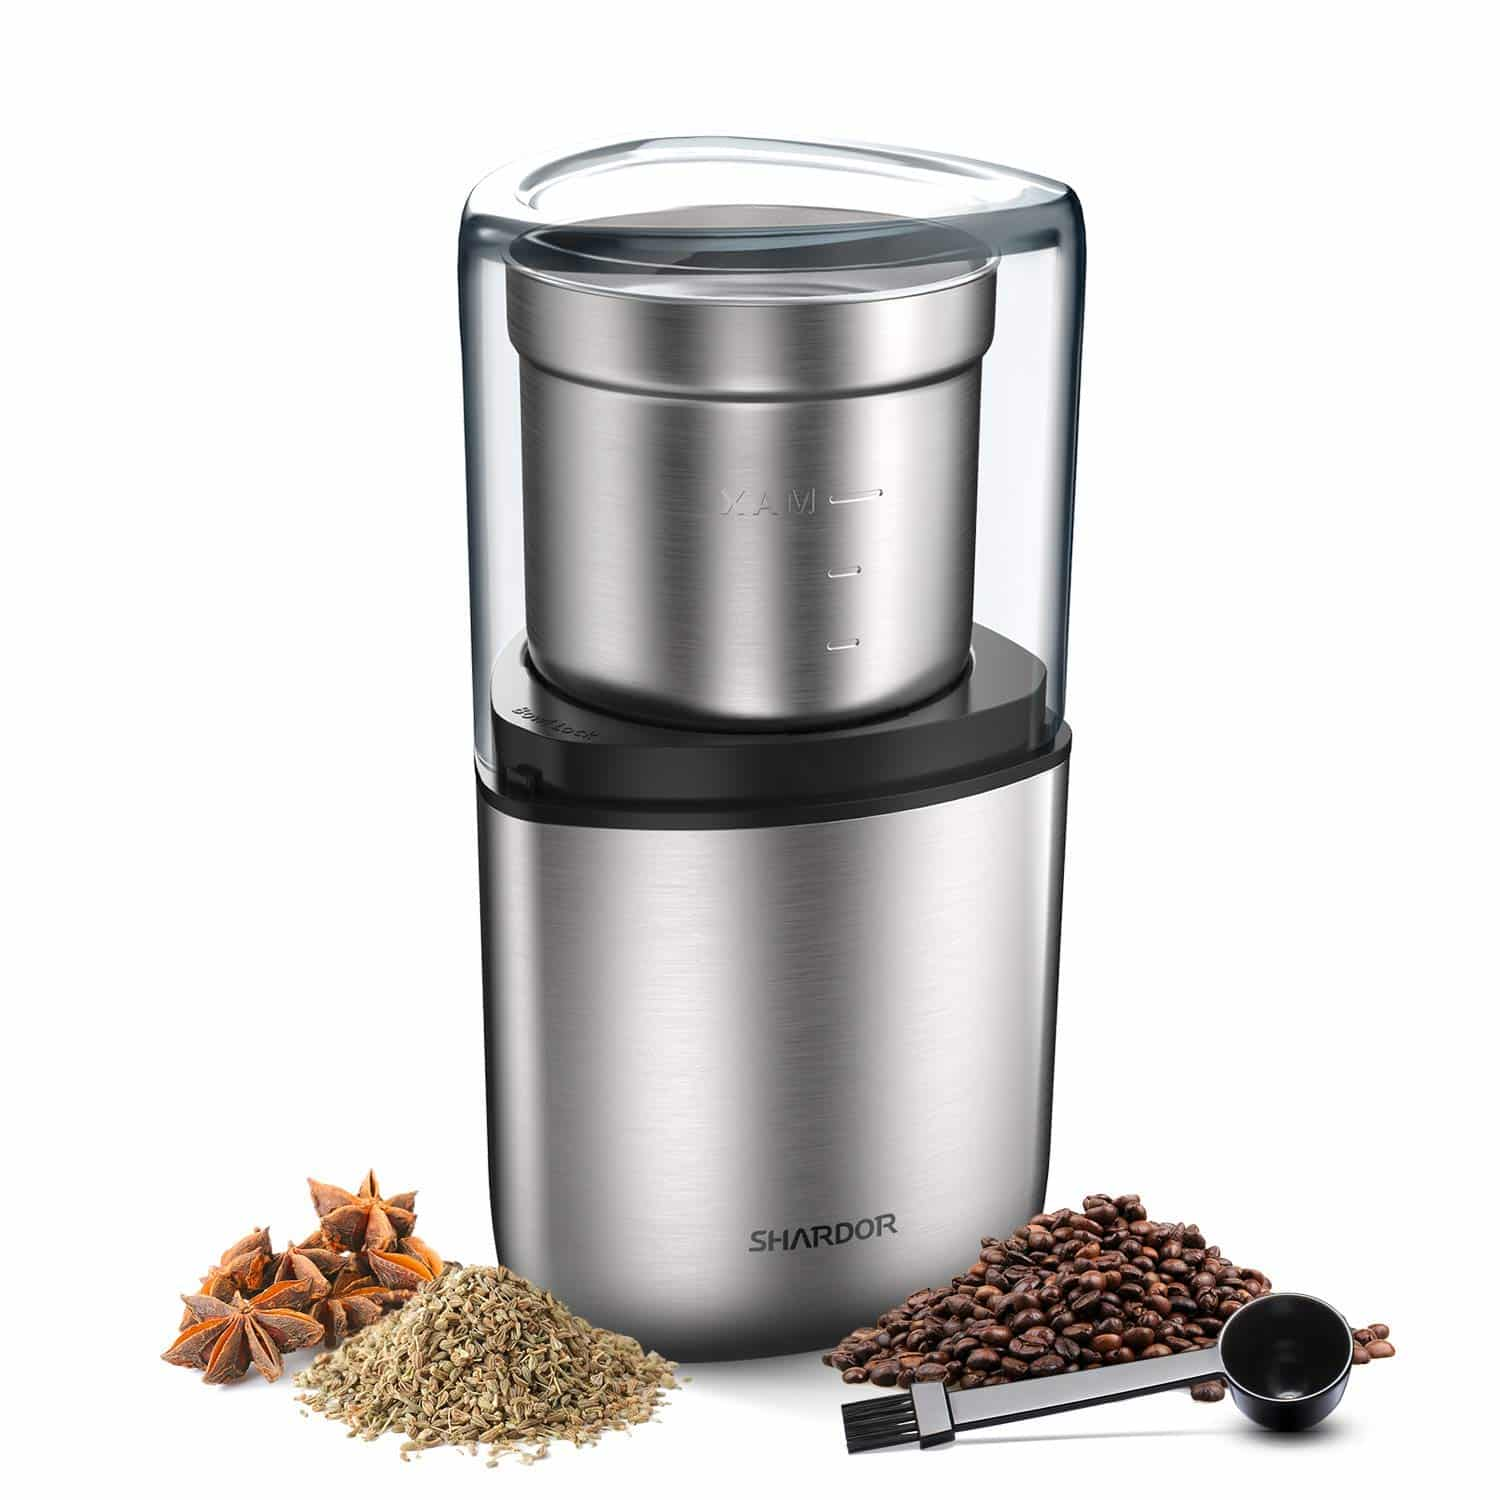 SHARDOR Electric Coffee Bean and Spice Grinder